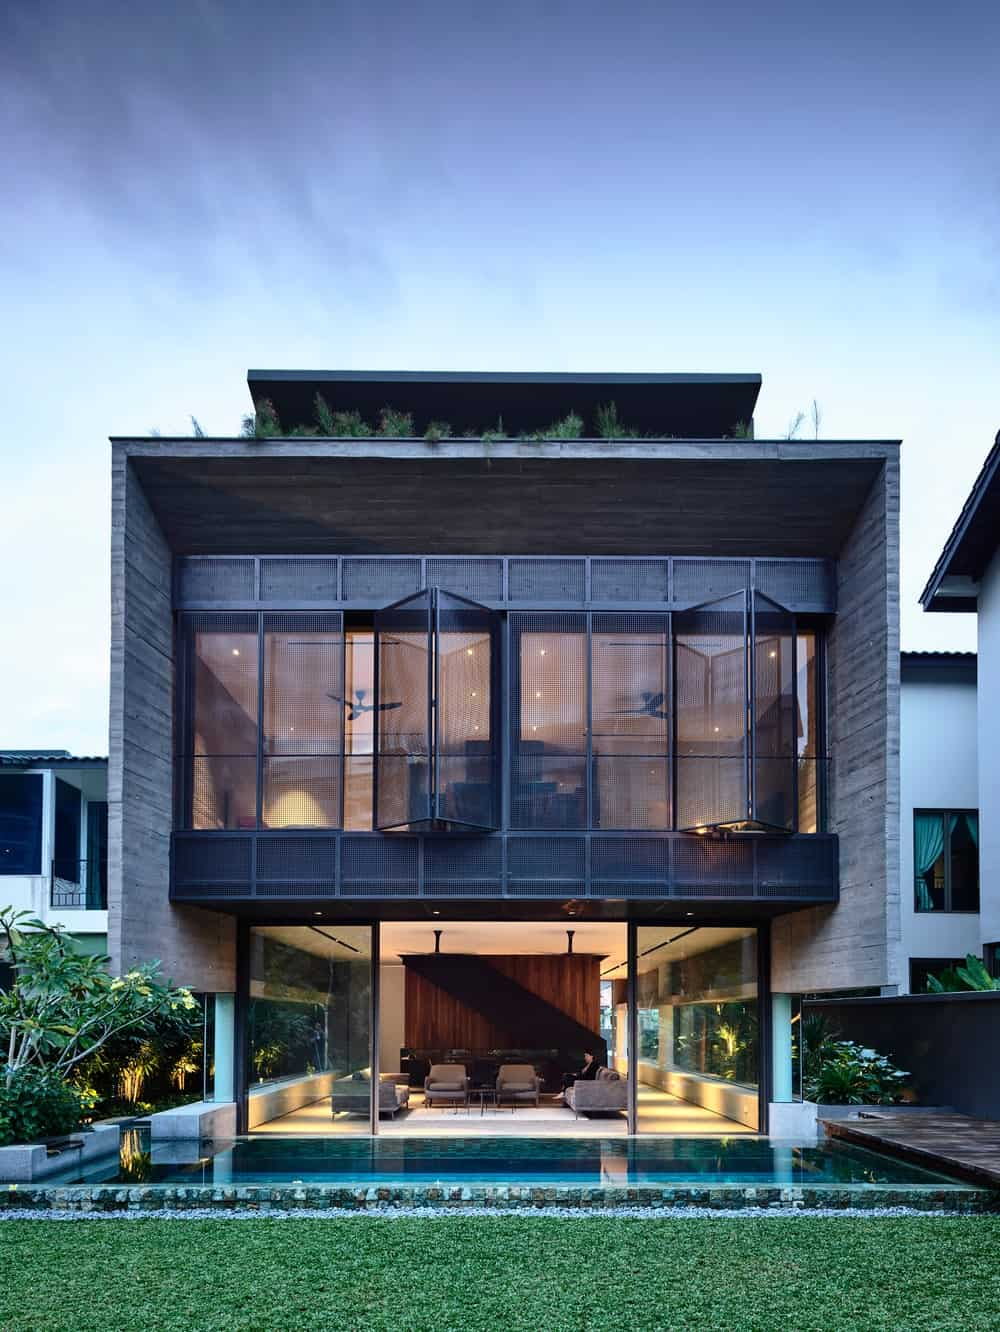 This view of the back of the house showcases a glass-walled ground floor with a pool on the side and an opaque-paneled second level with a warm glow.